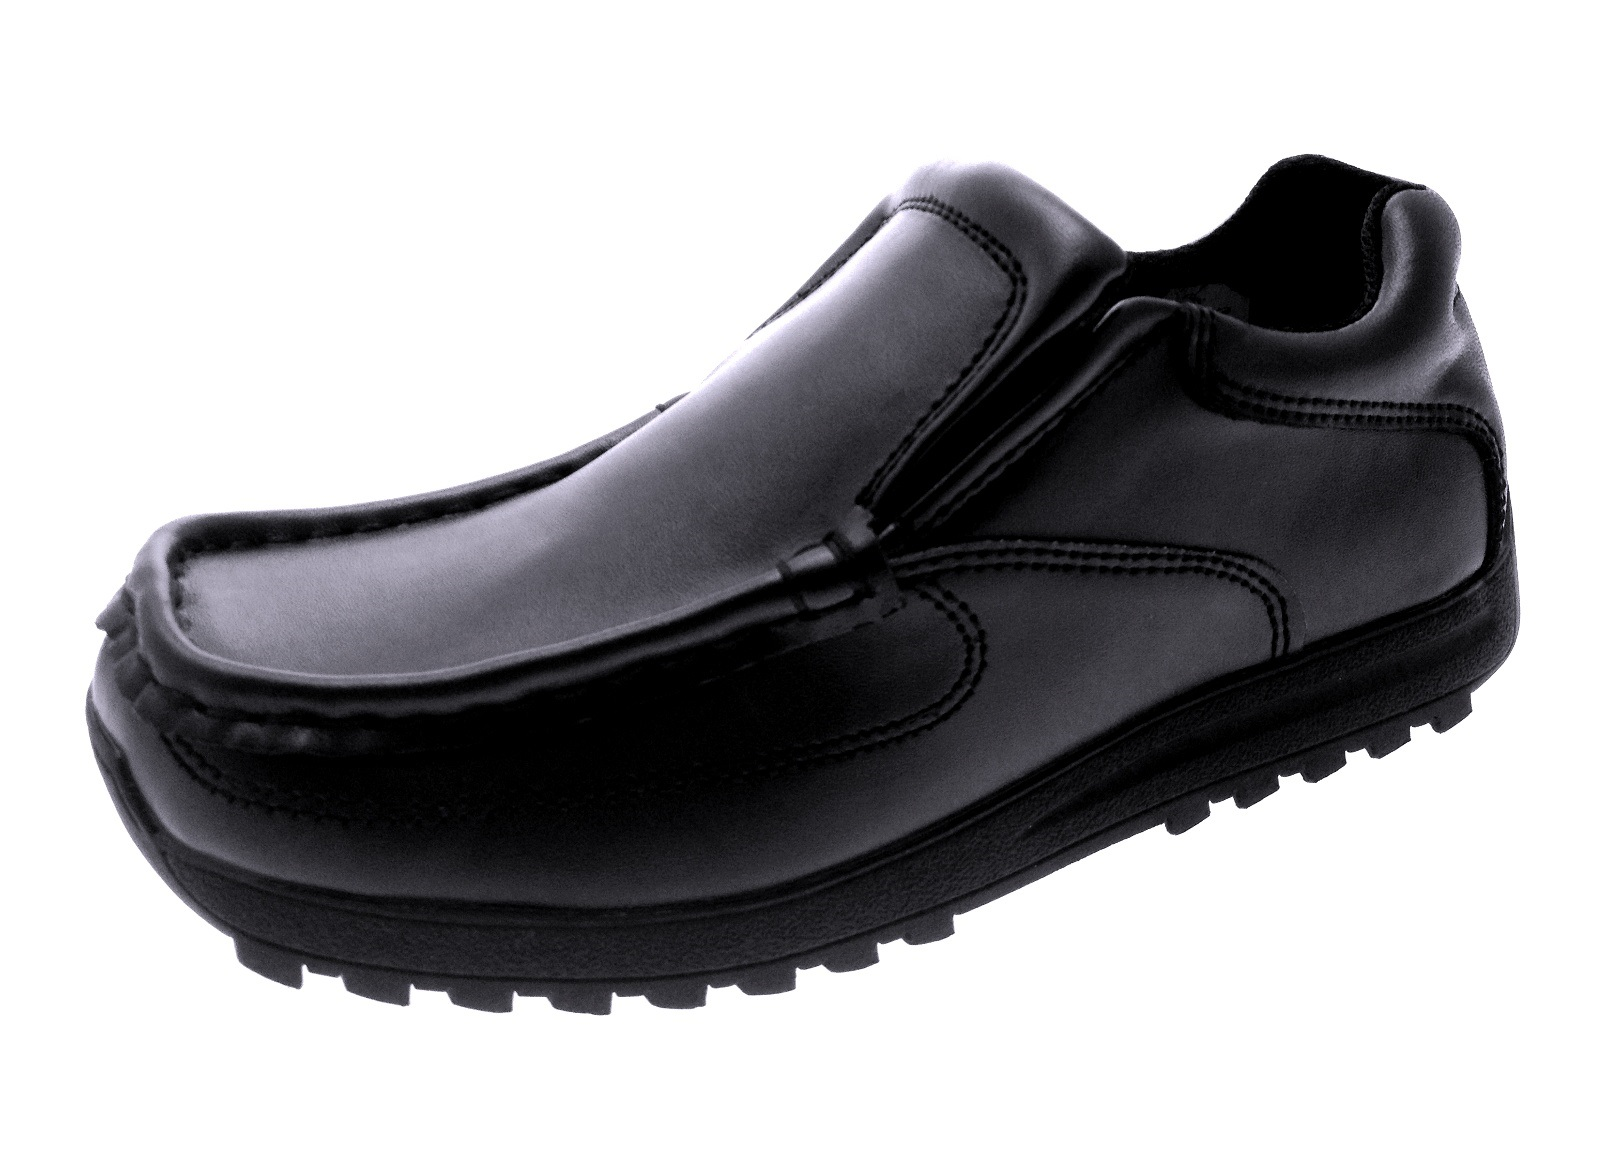 Mens Boys Kids Black Leather School Shoes Work Loafers Formal Shoes Size UK 2-11 | EBay